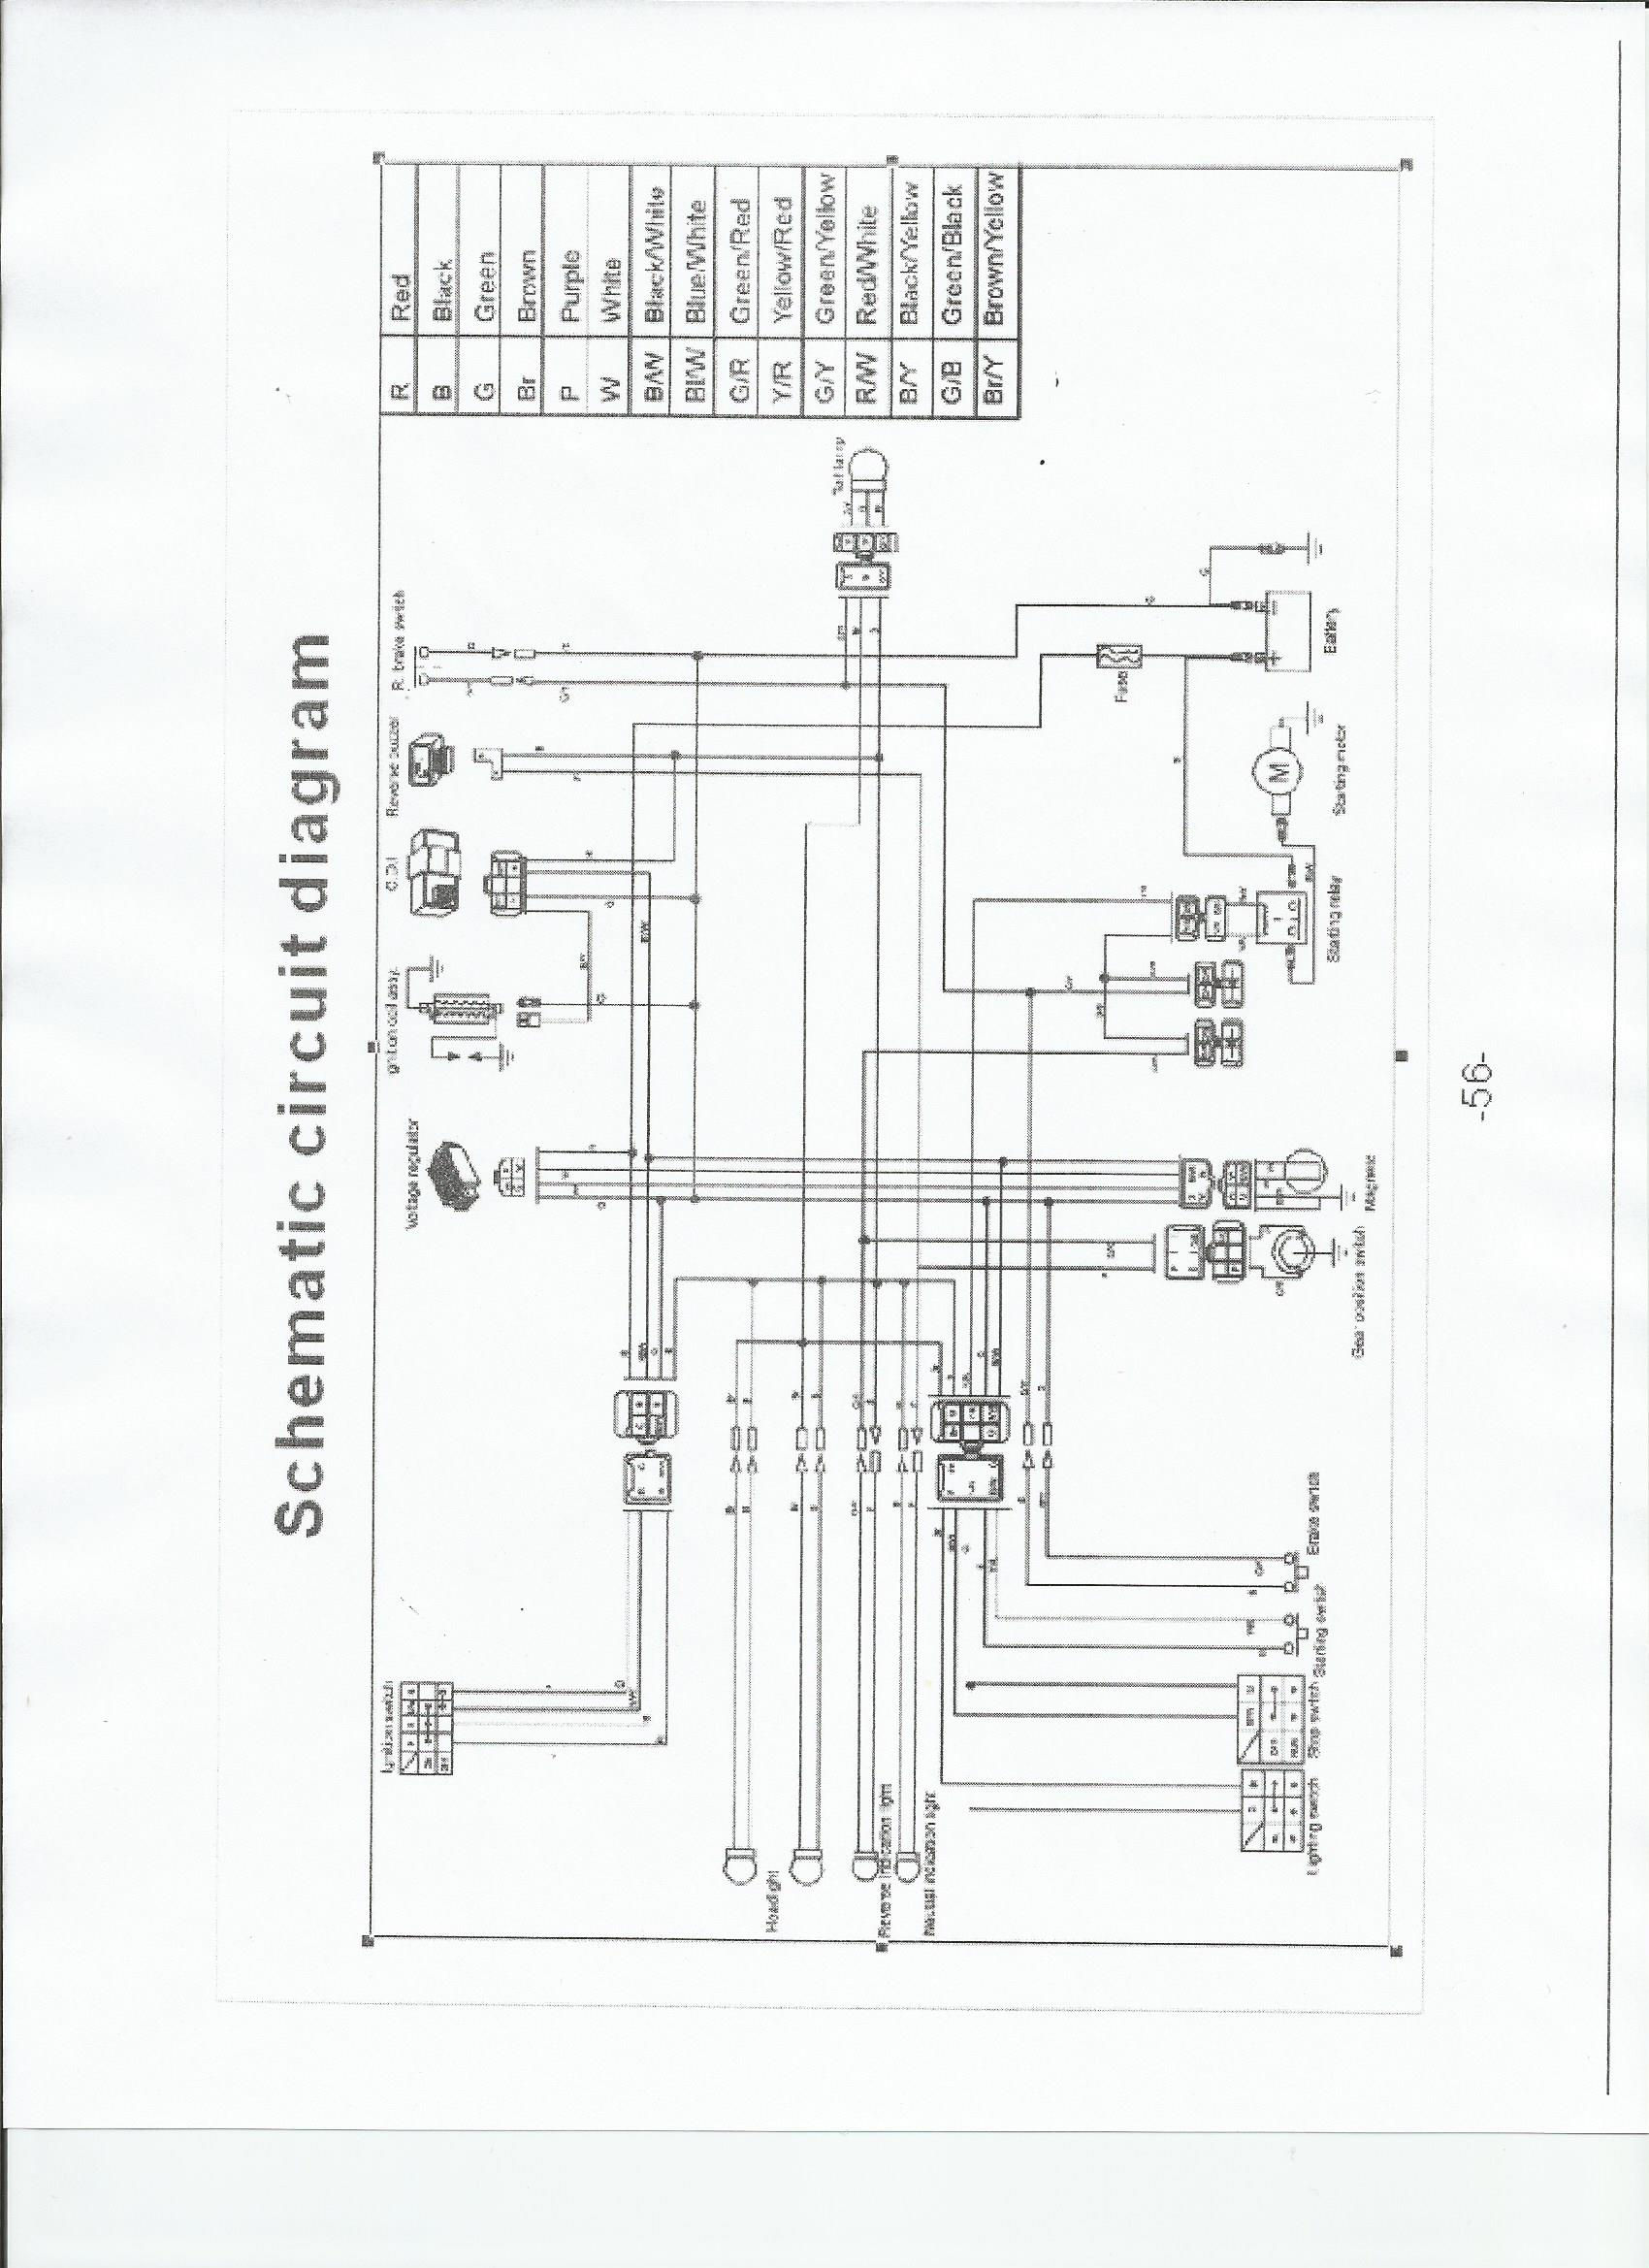 1986 chevy diesel alternator wiring diagram assassin wiring diagram gy6 150cc fuel diagram diagrams wiring diagram images